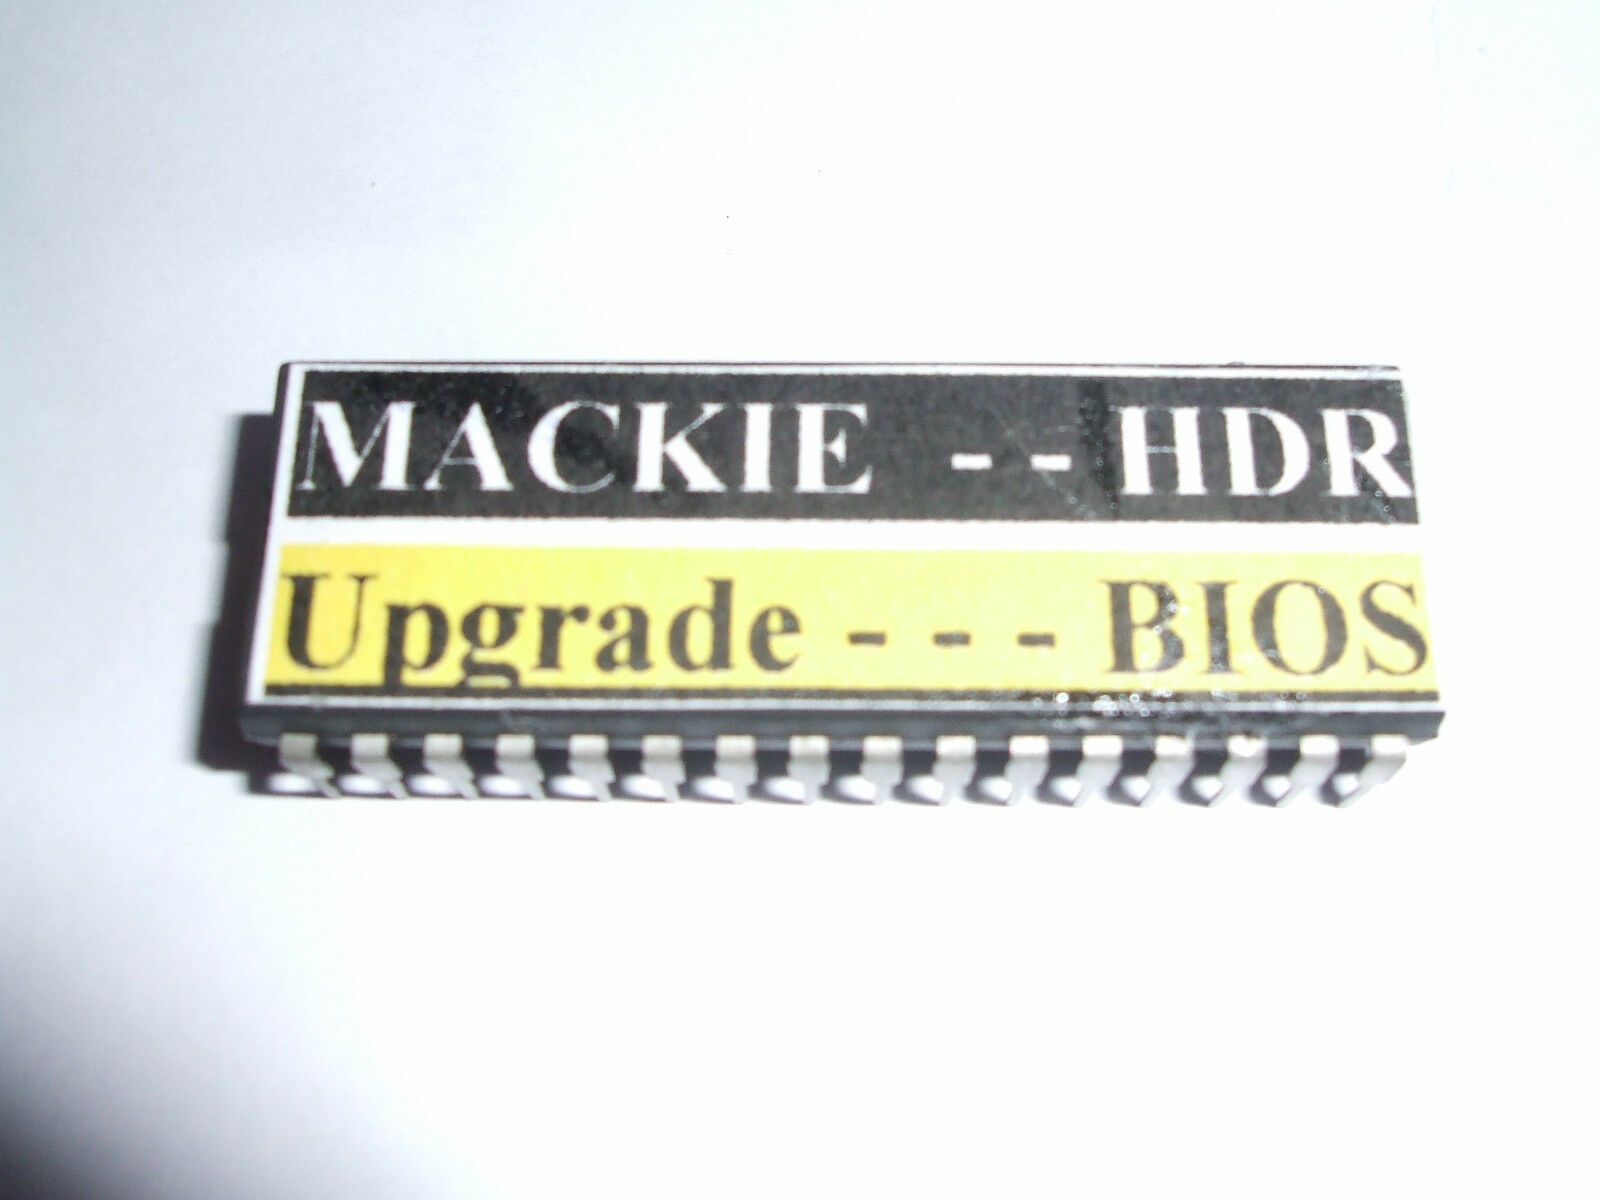 2 x Mackie HDR 24 96 BIOS Upgrade - enables use of larger hard drives - 120 GB